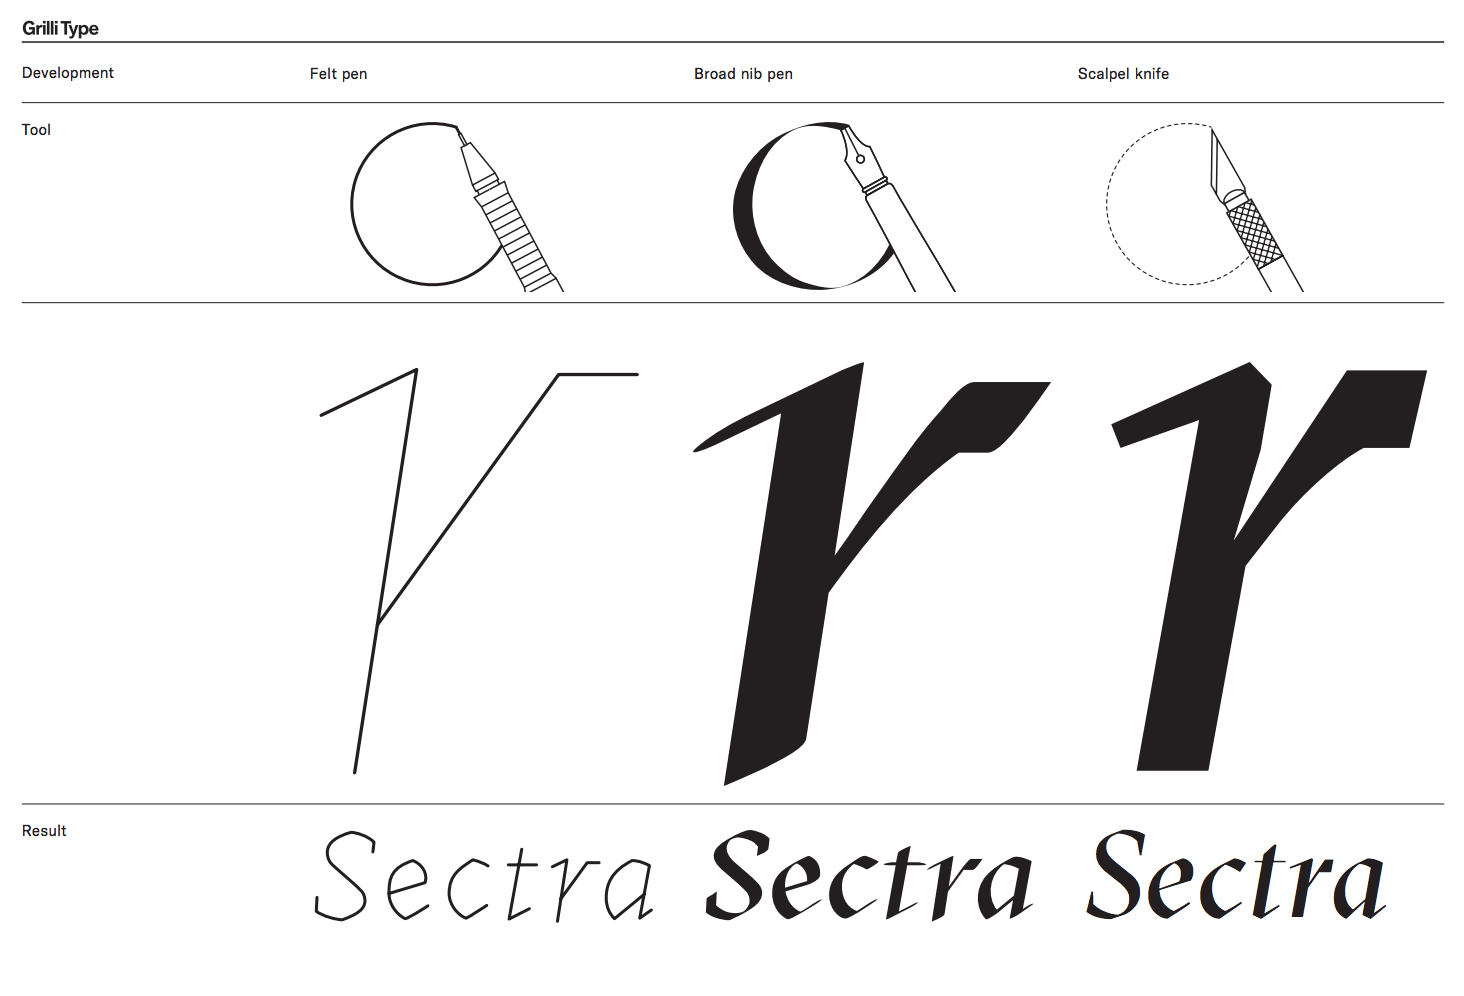 GT Sectra is a serif typeface combining the calligraphic influence of the broad nib pen with the sharpness of the scalpel knife.